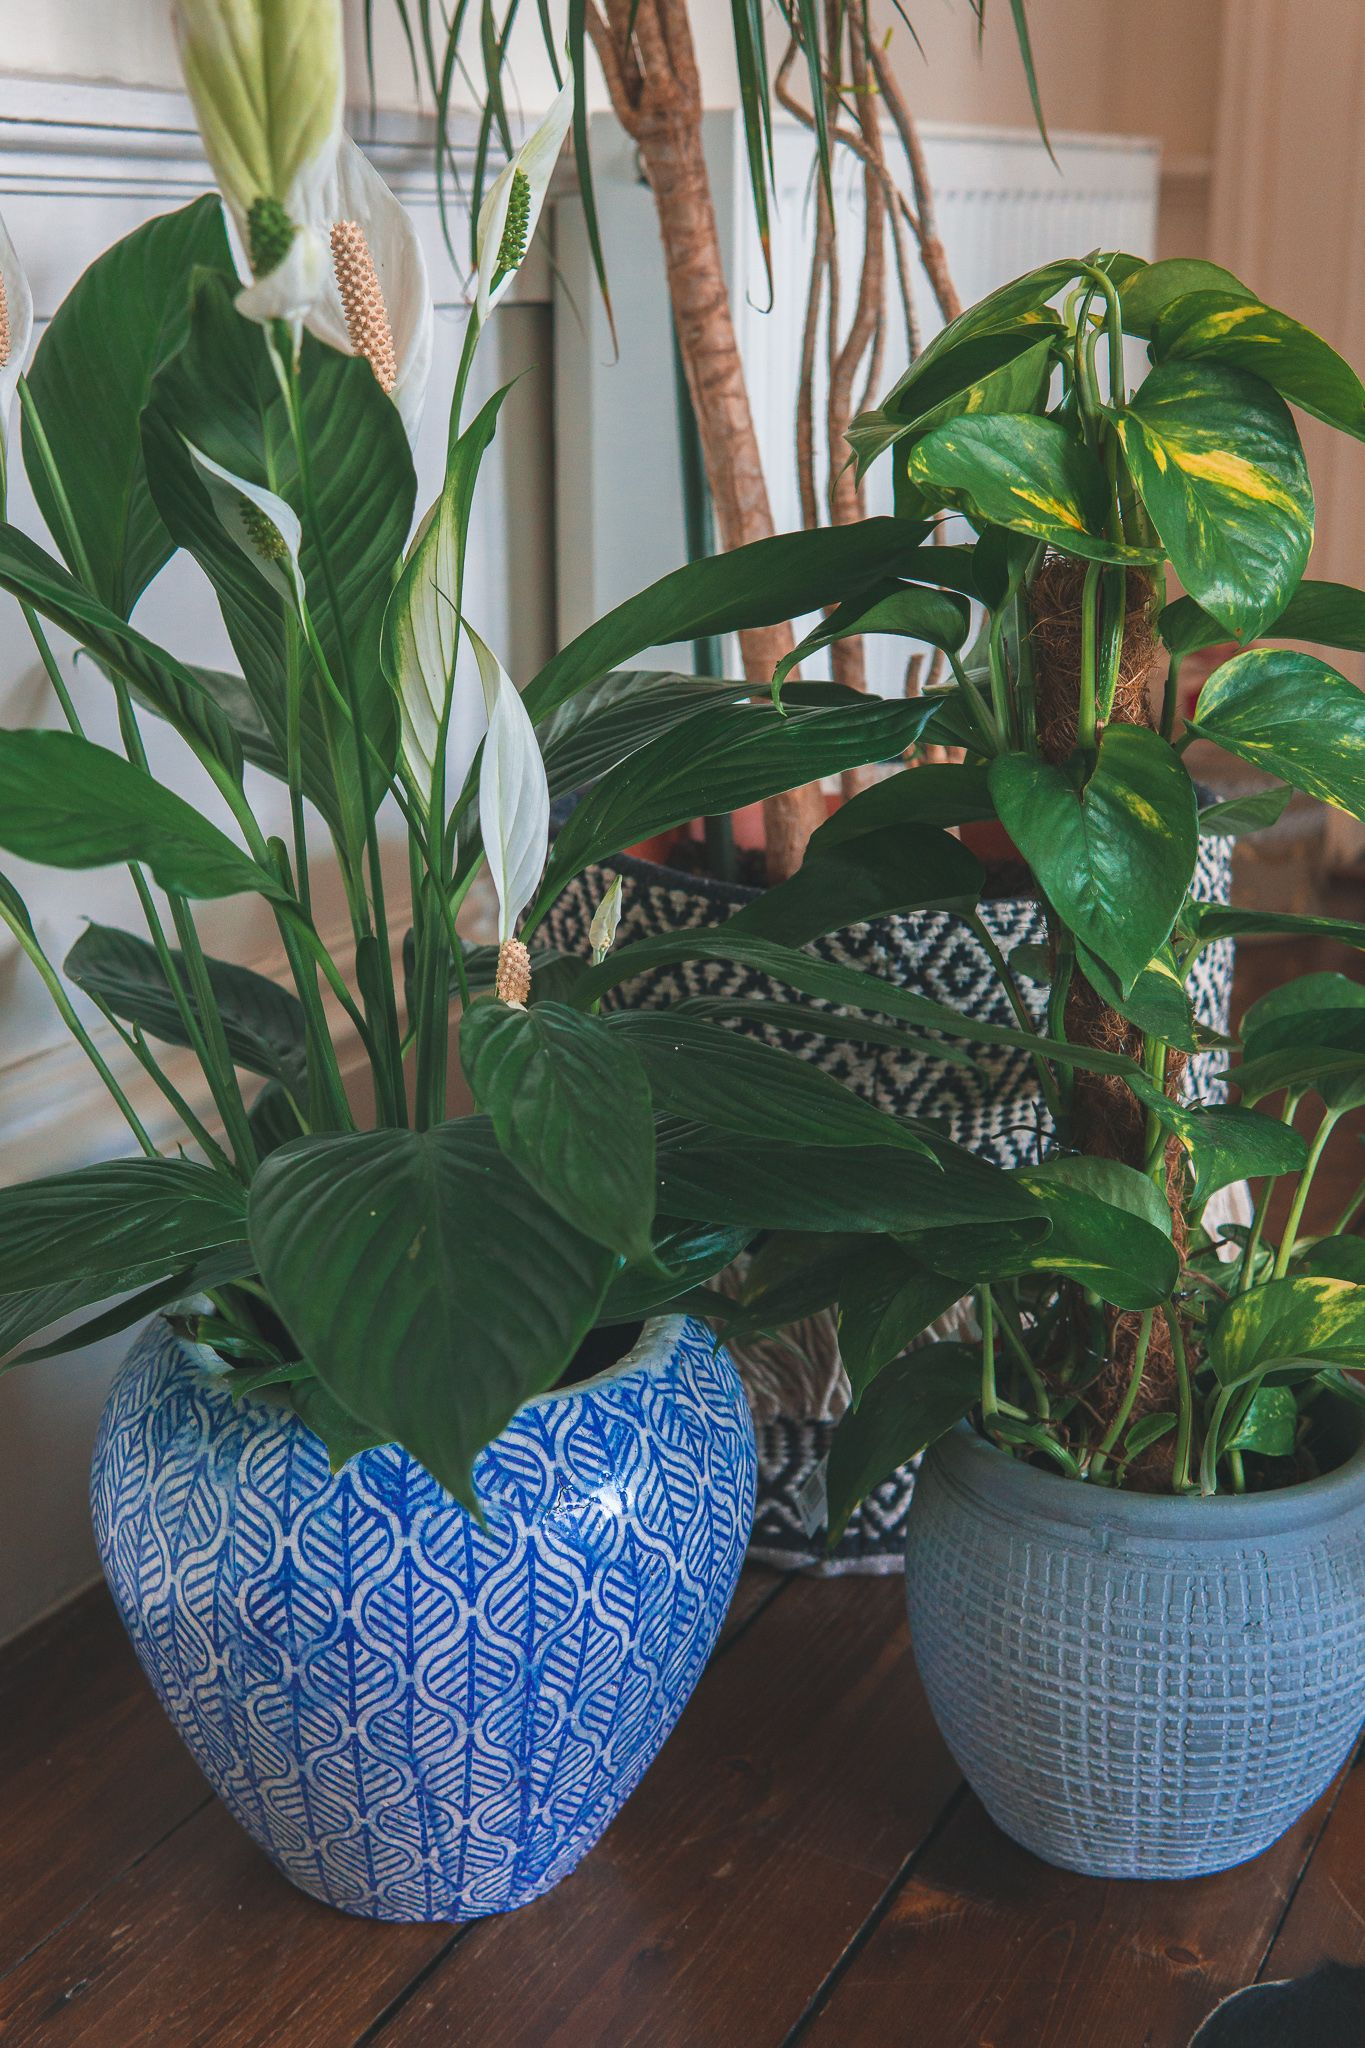 Houseplants To Bring Joy To Your Home A Model Moment In 2020 Houseplants Plants Peace Lily